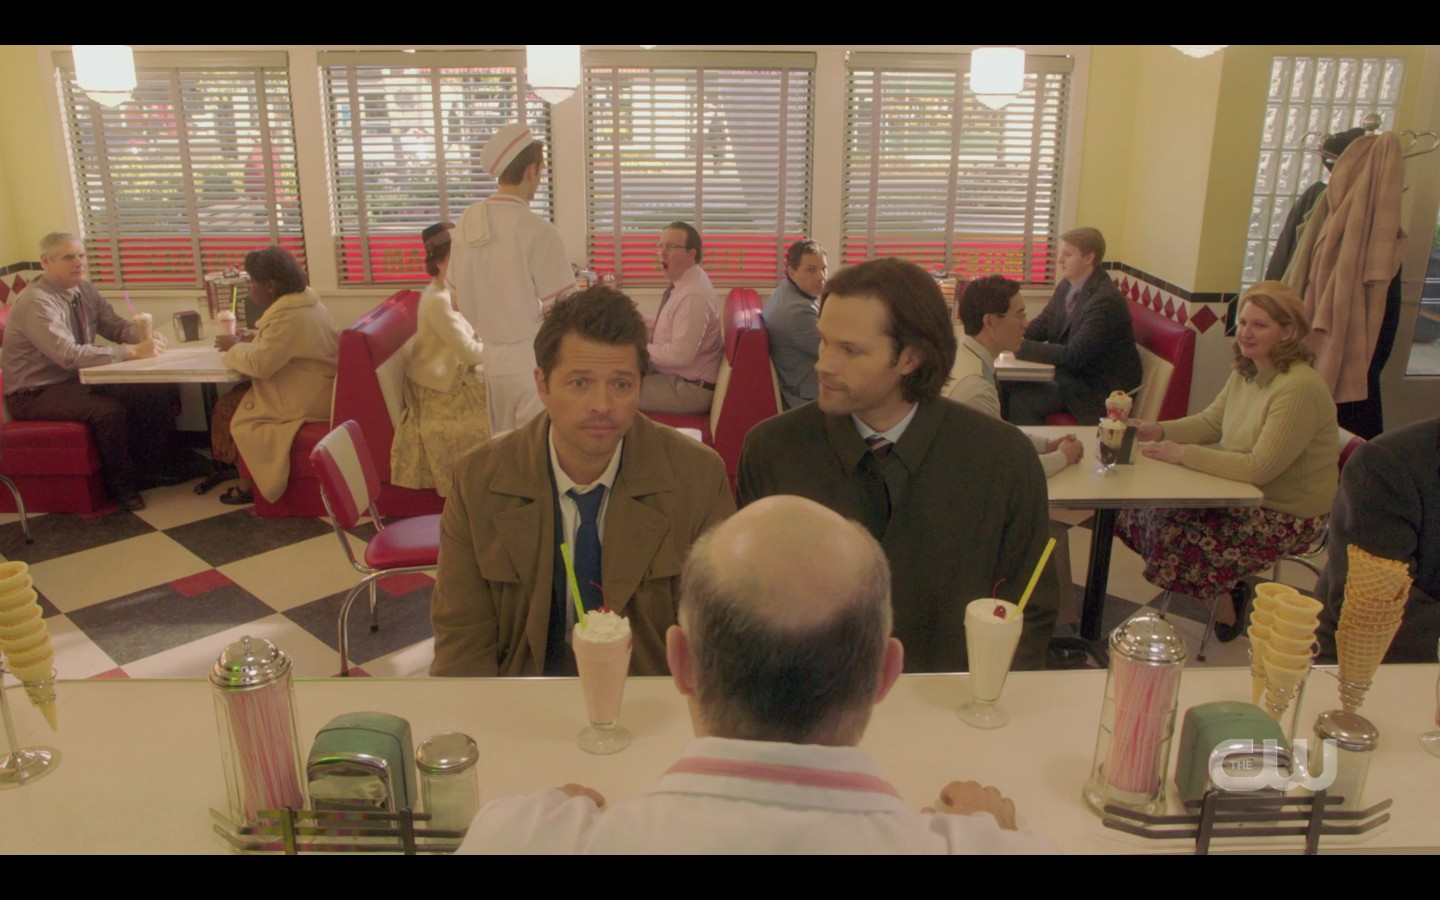 Castiel with Sam Winchester at diner milkshakes SPN Peace of Mind